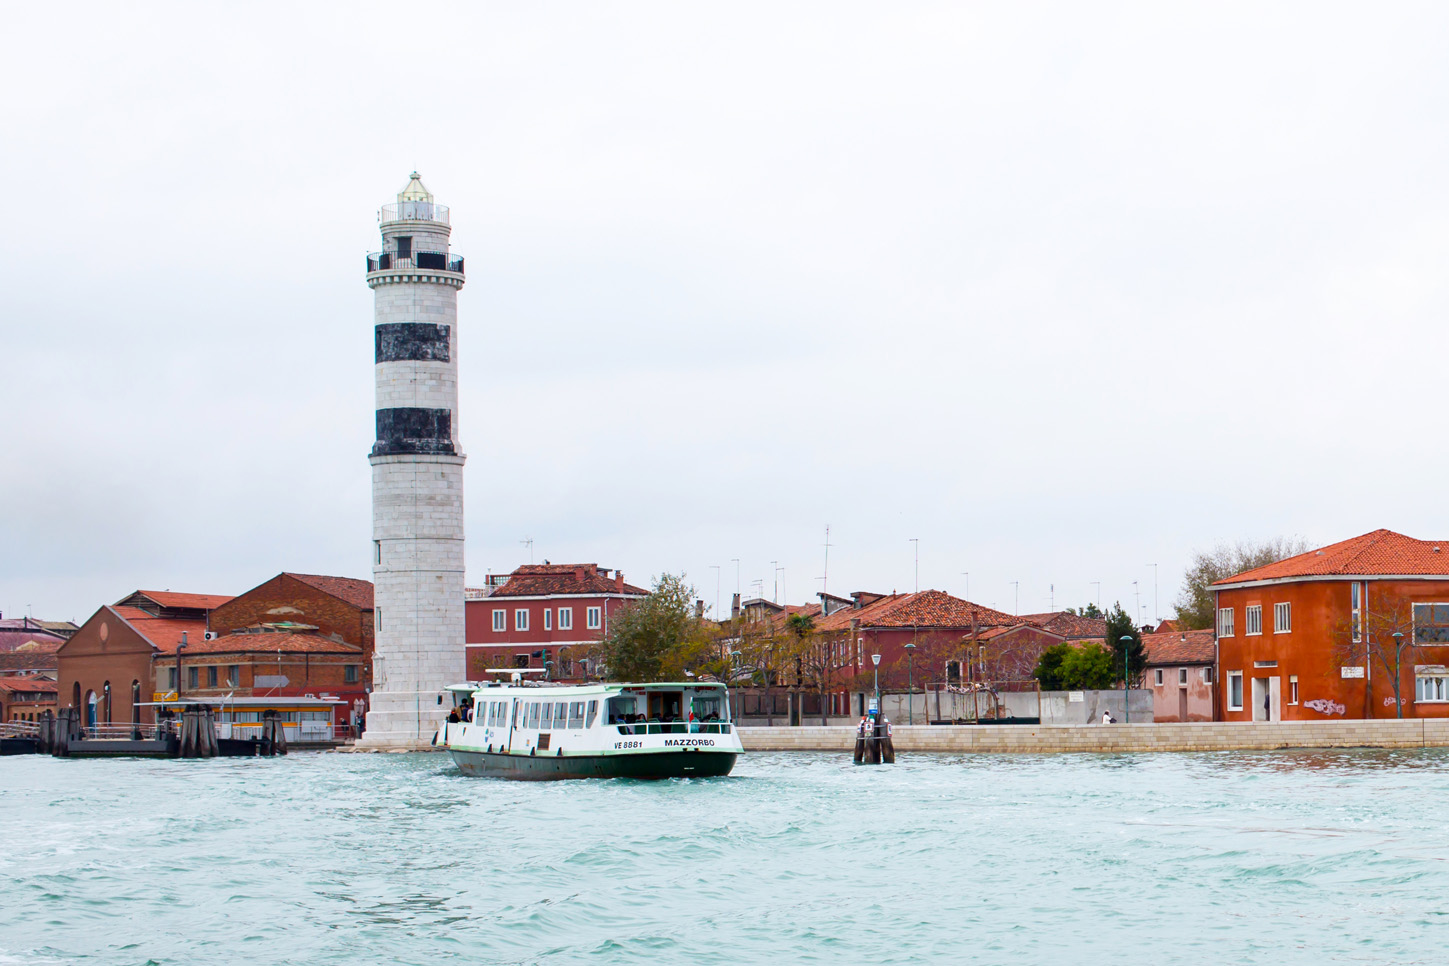 The Murano lighthouse